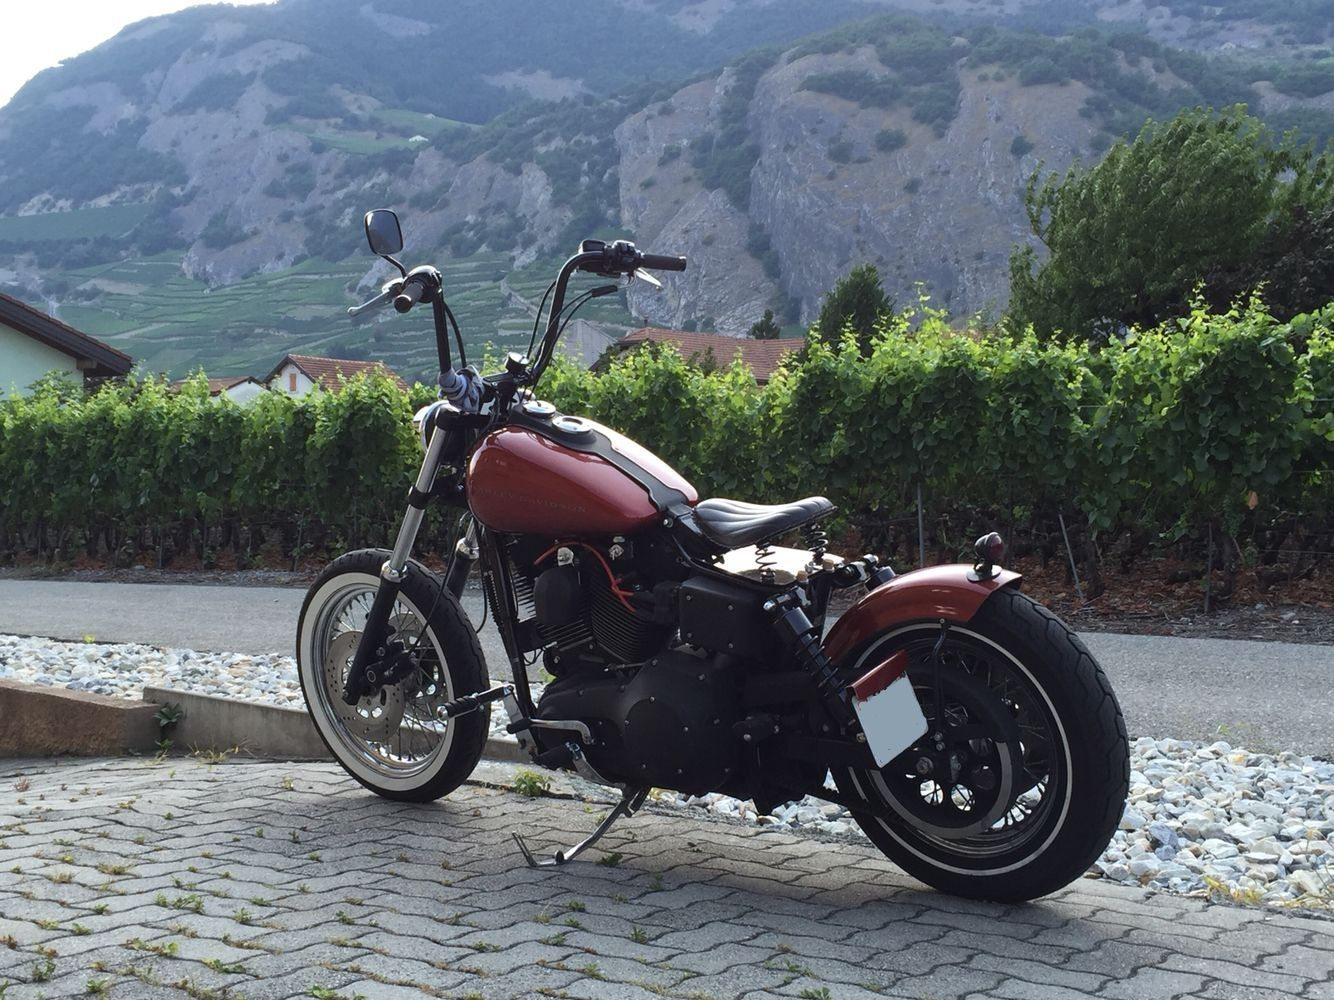 Harley Davidson Offers Dyna Bobber Kit On Countersteer